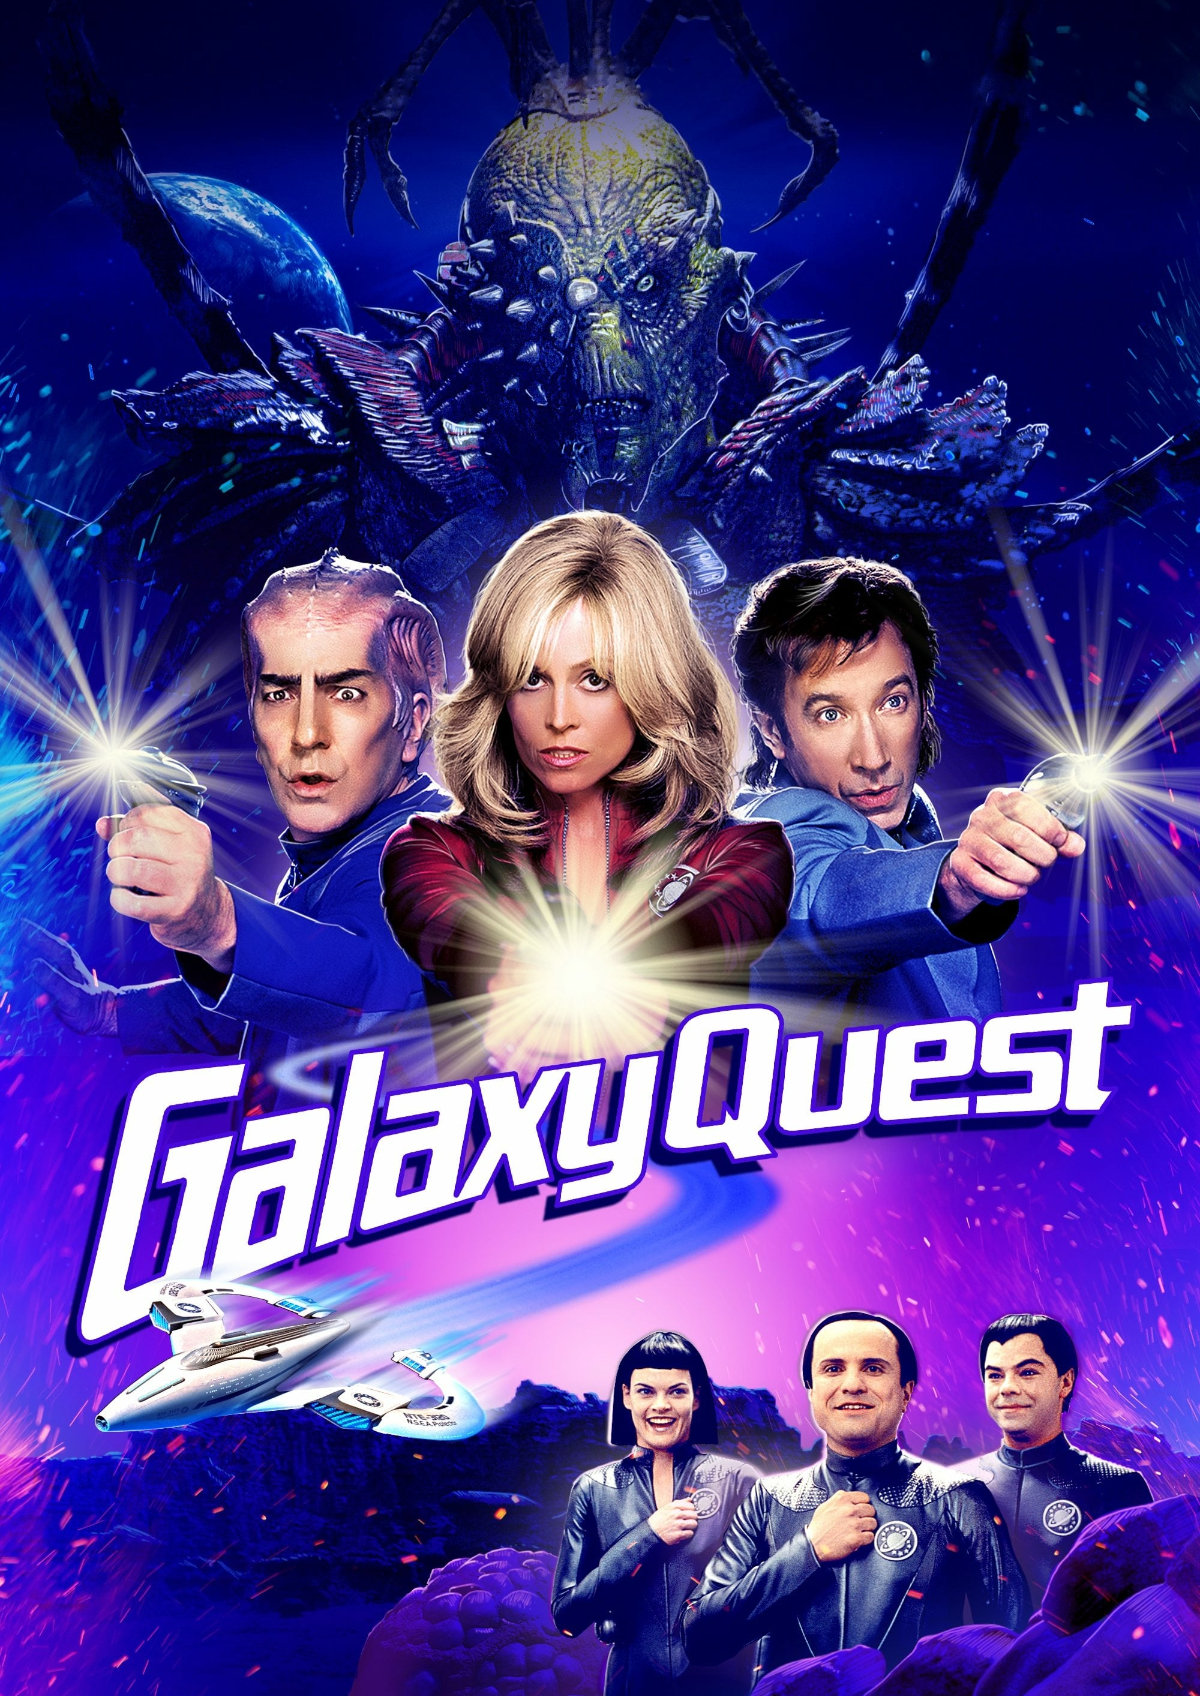 'Galaxy Quest' movie poster